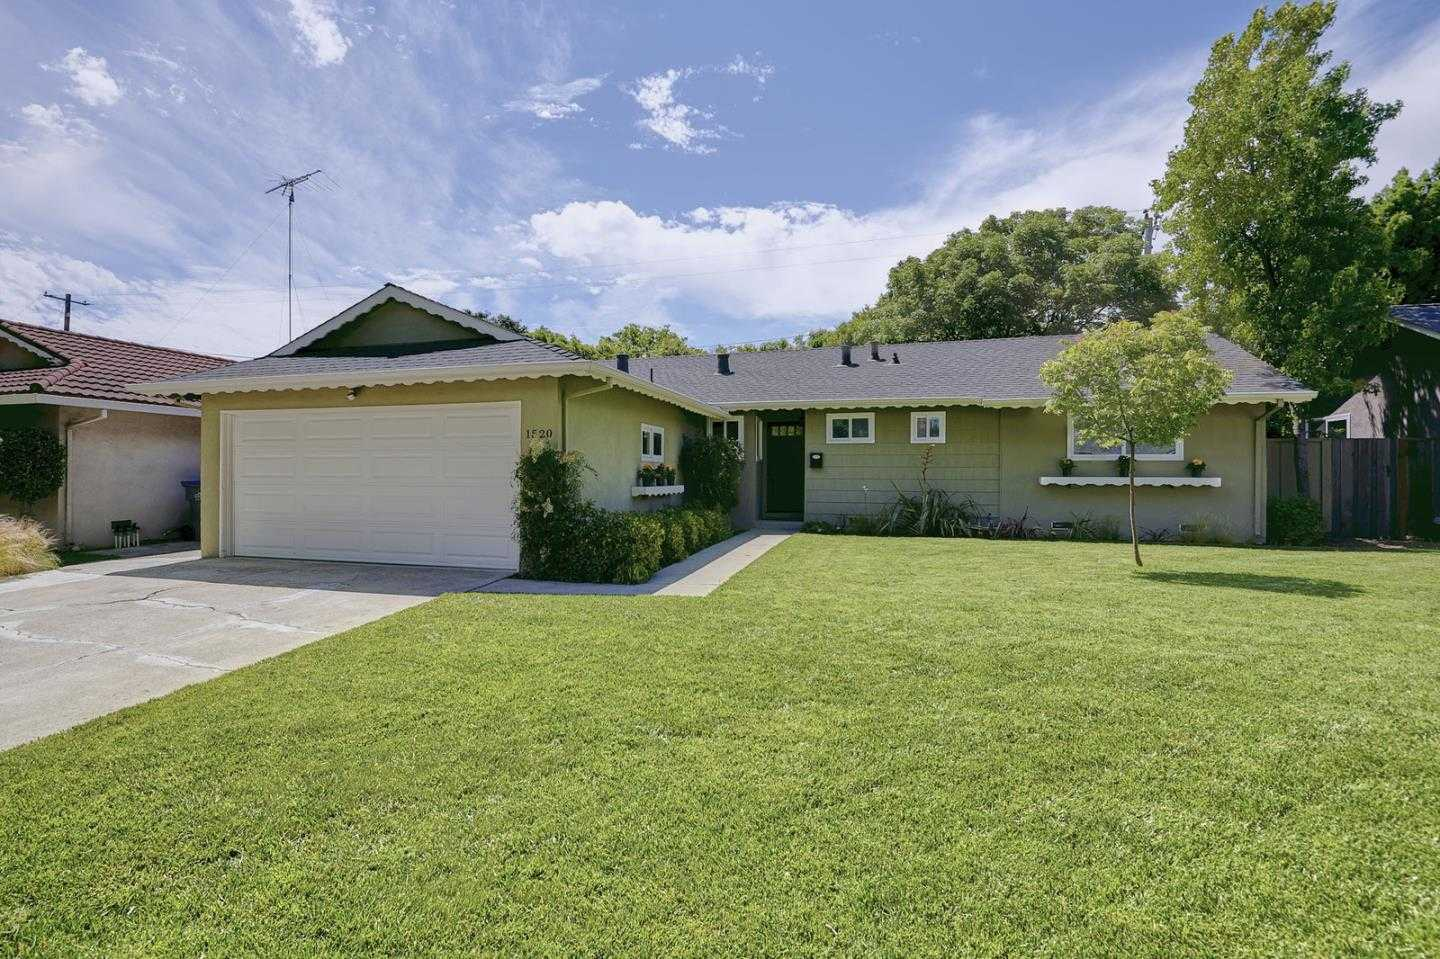 1520 Willowgate Dr San Jose, CA 95118